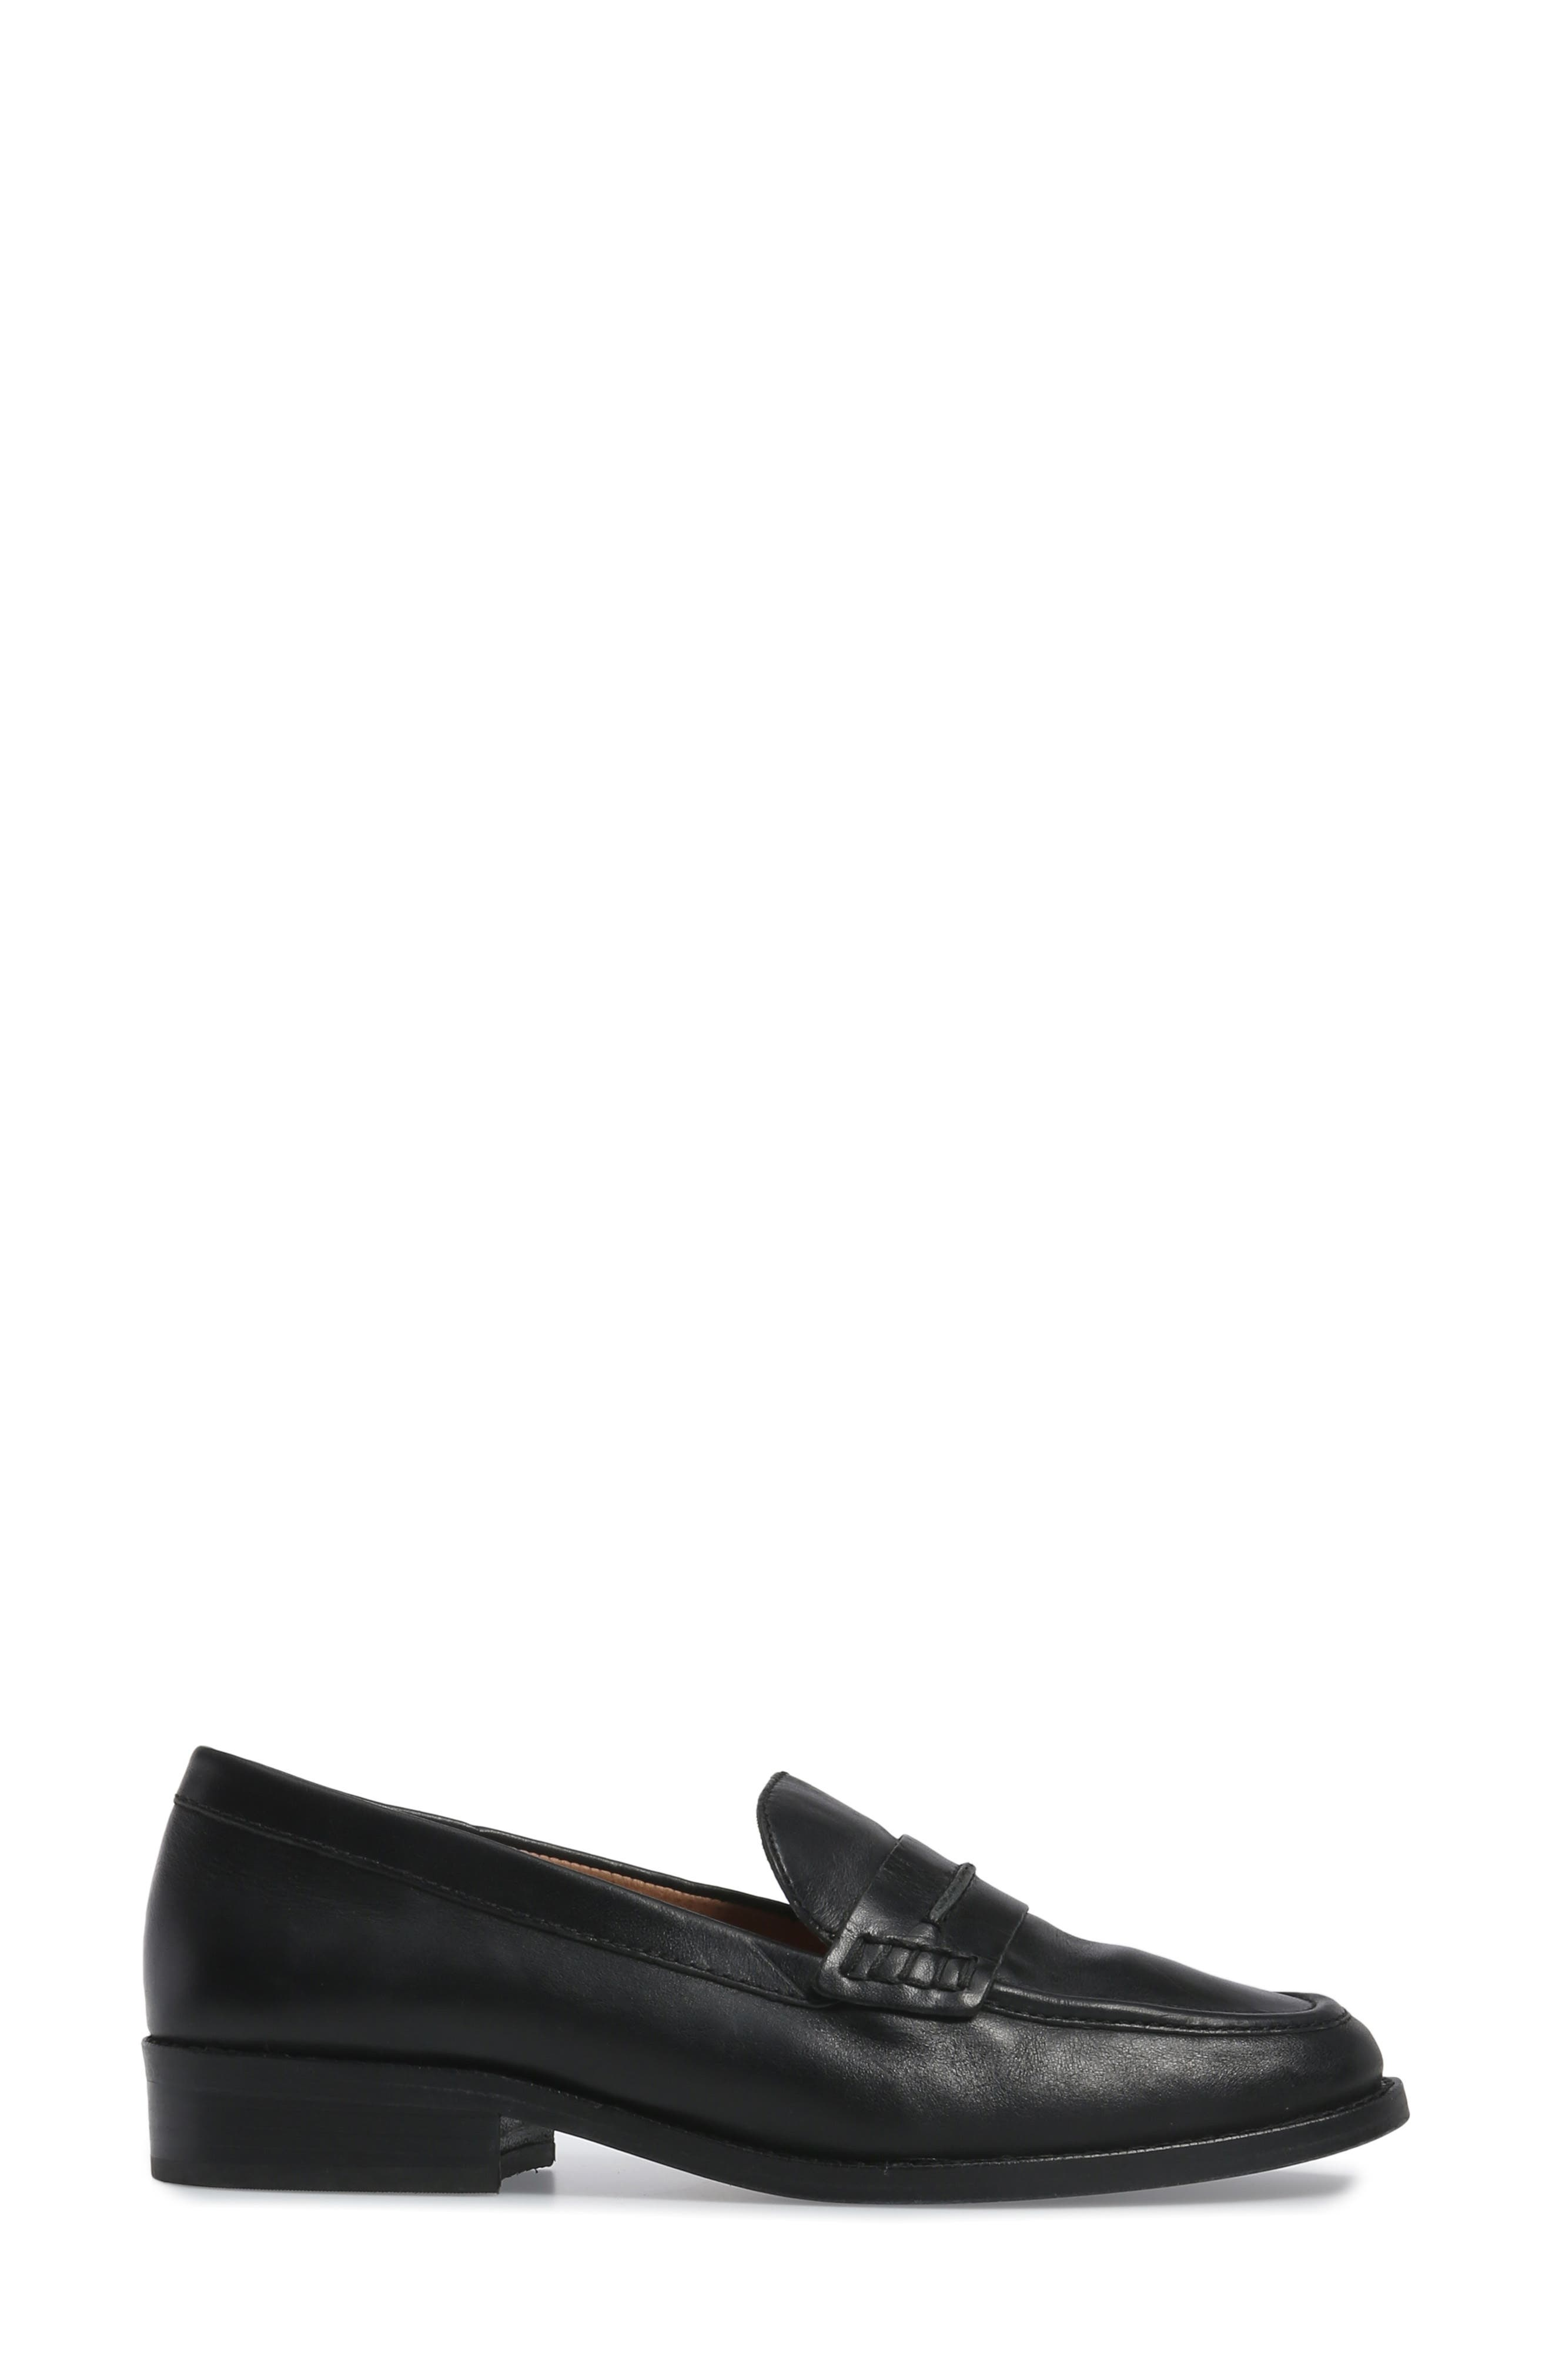 MADEWELL, The Elinor Loafer, Alternate thumbnail 3, color, 001